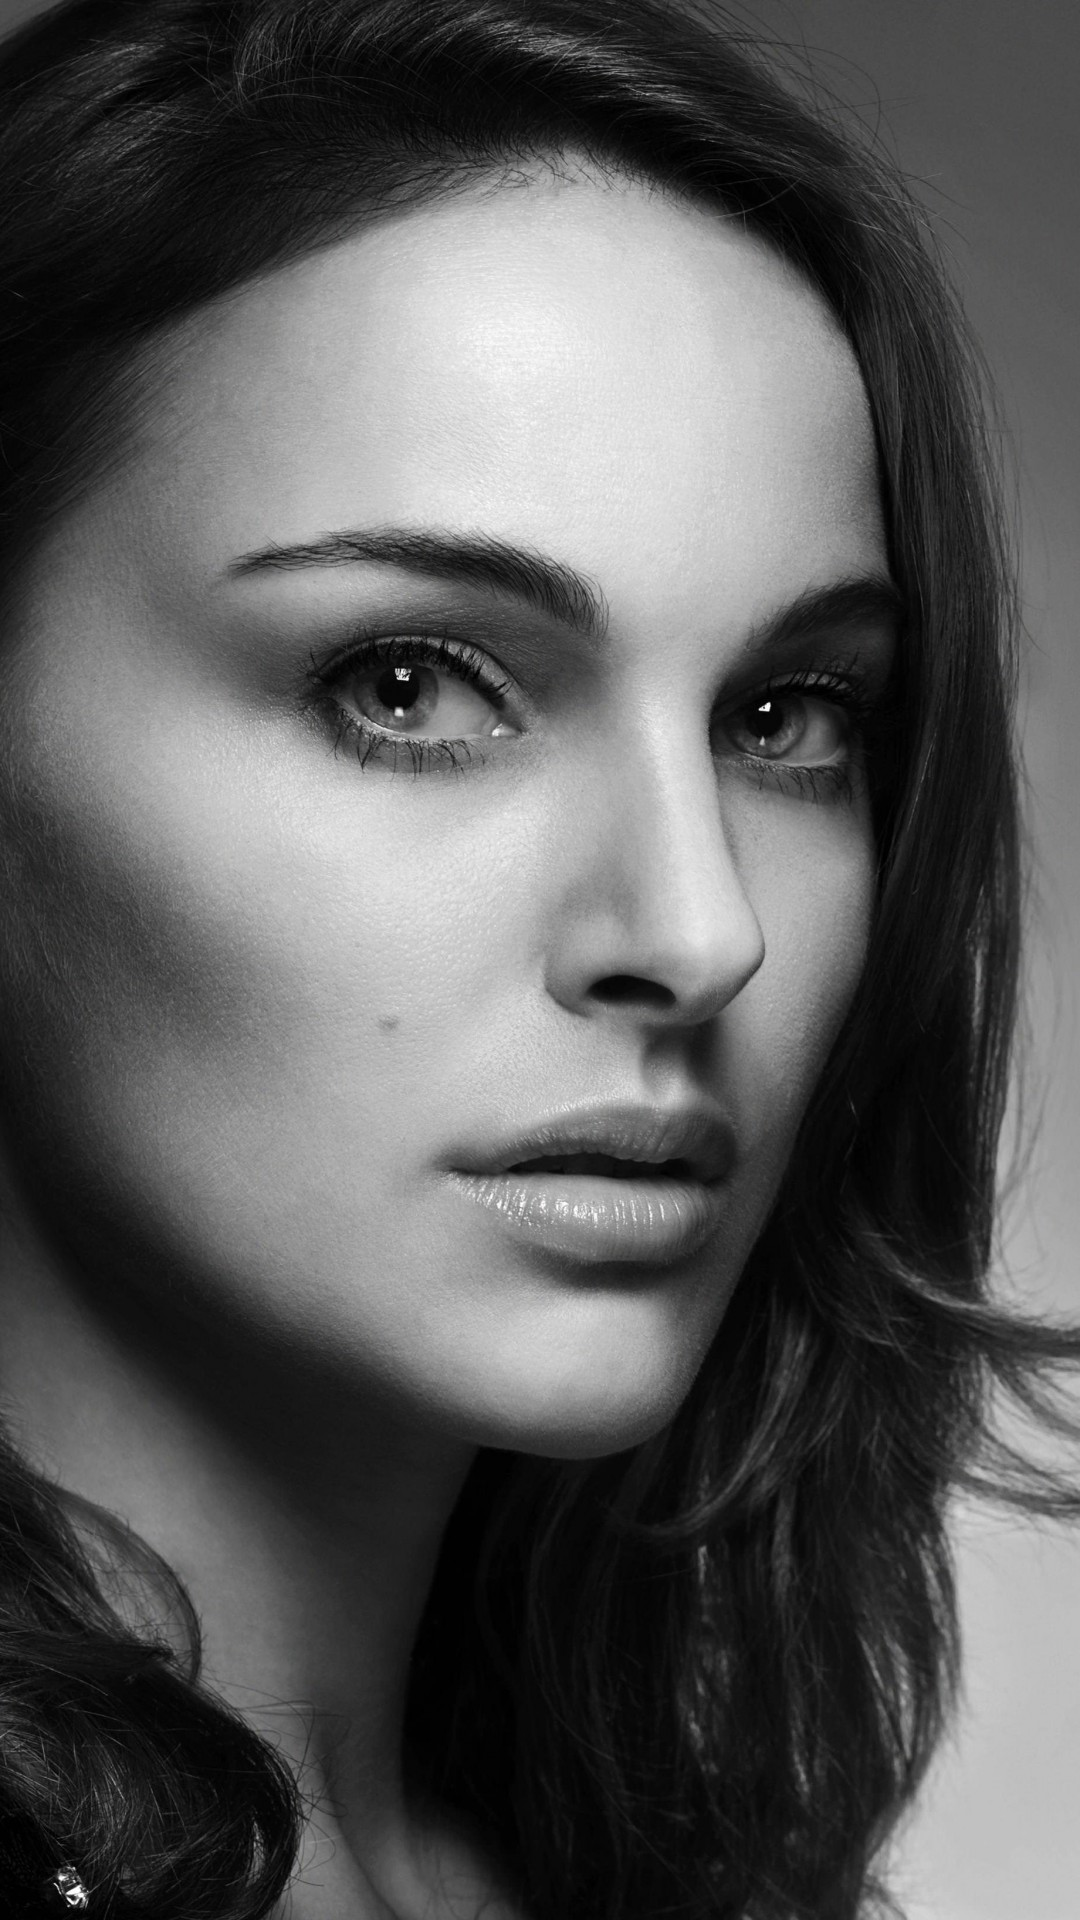 Natalie Portman in Black & White Wallpaper for HTC One